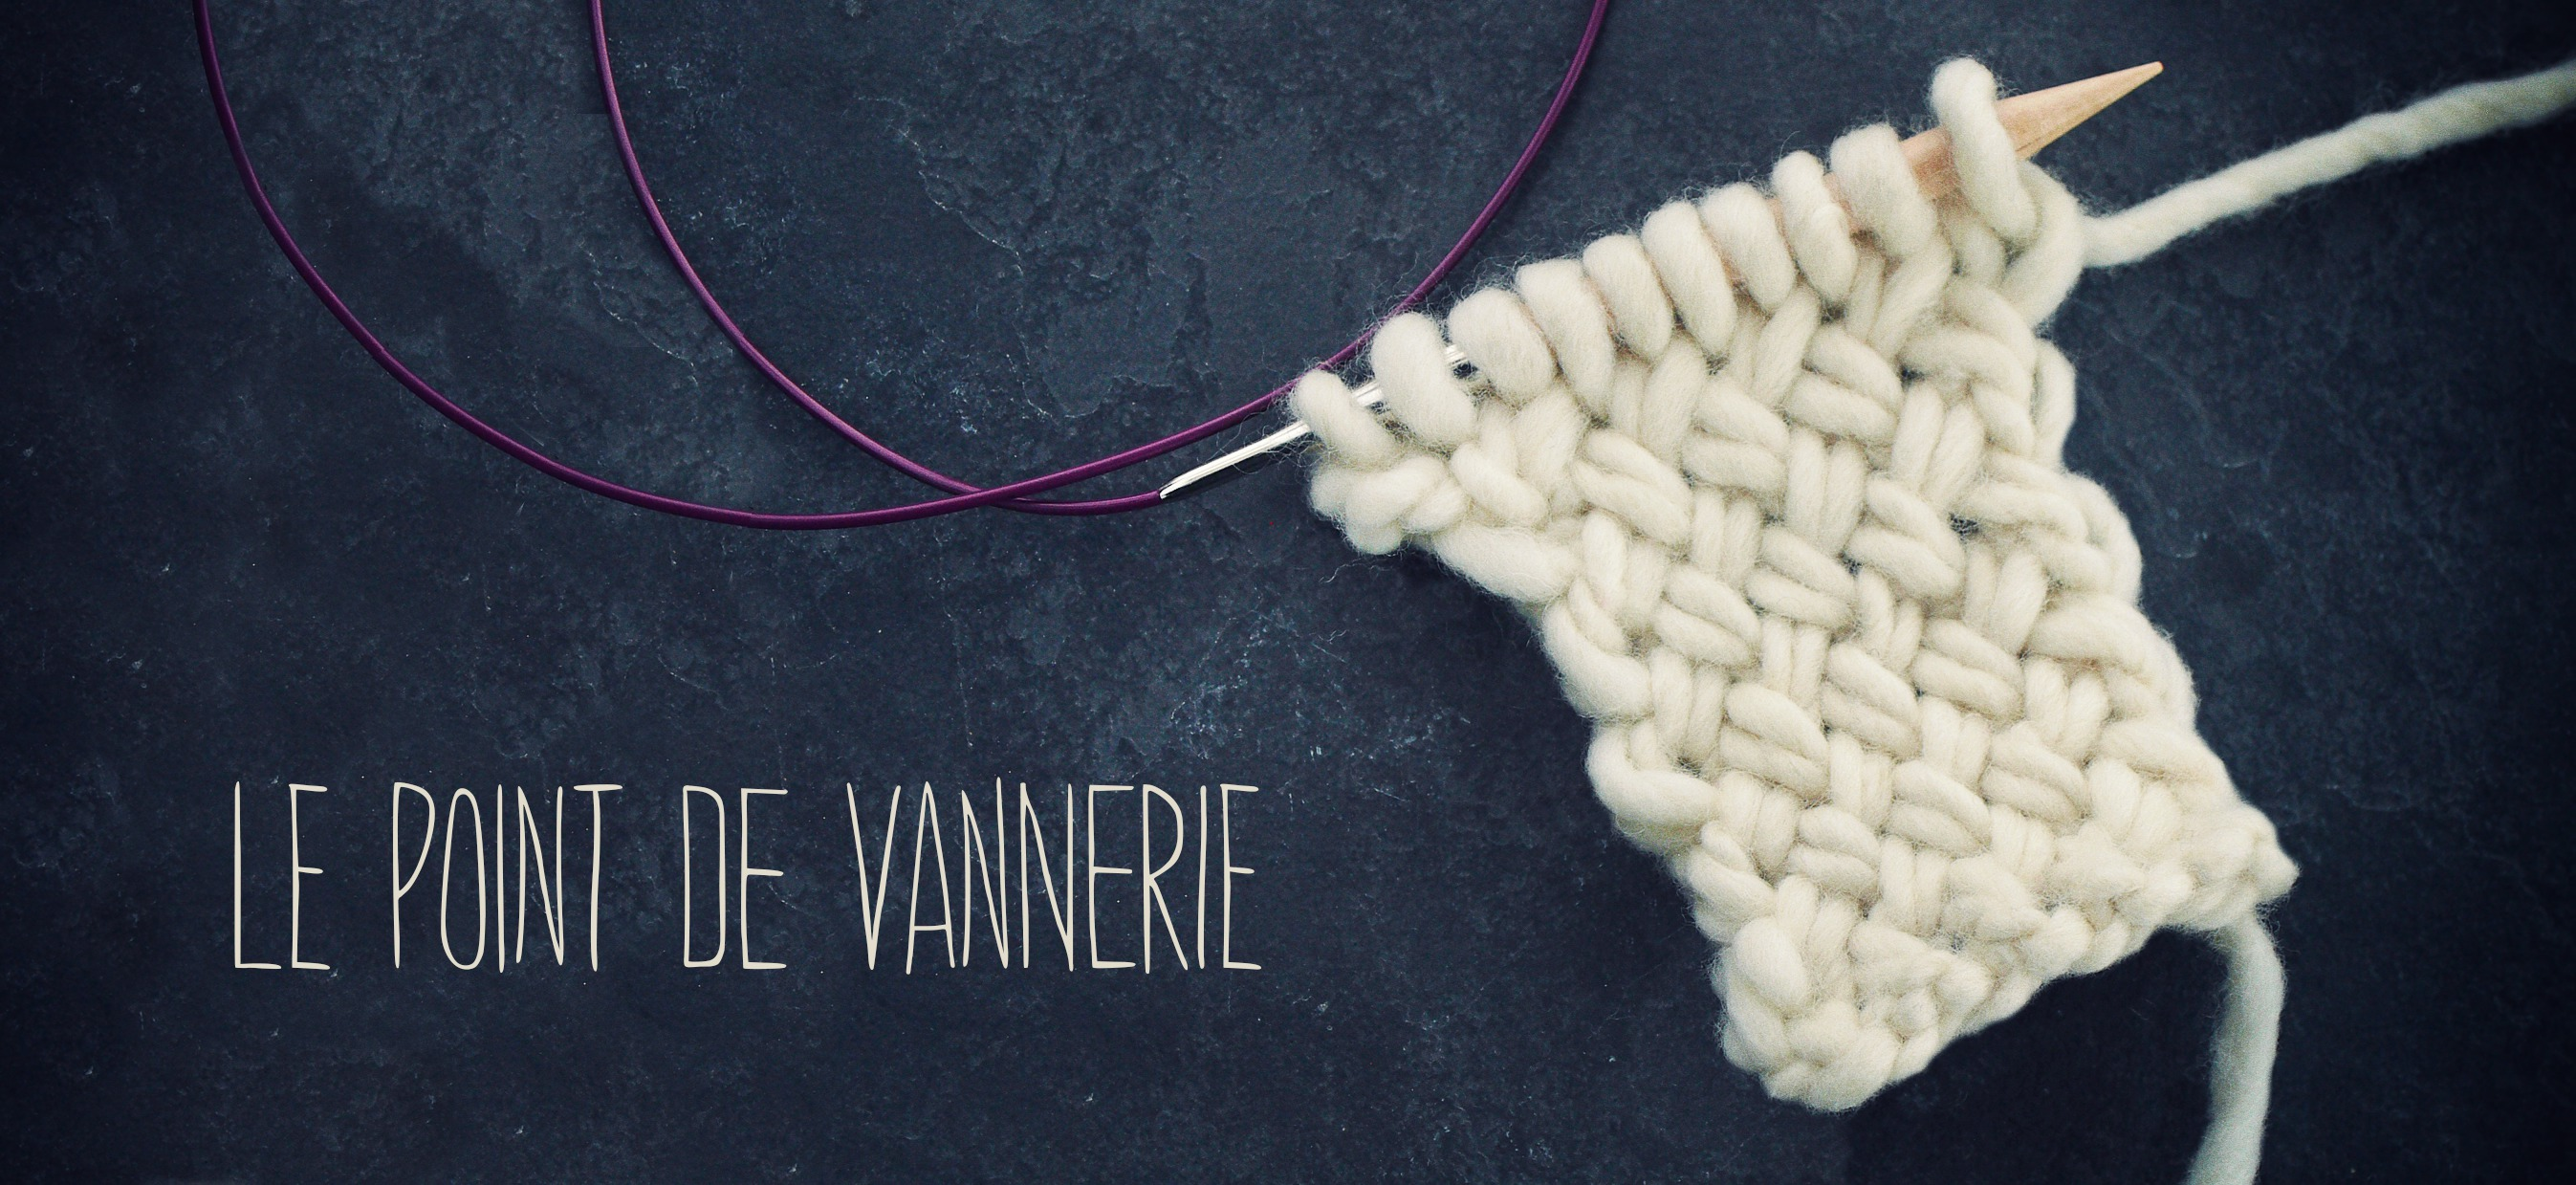 Bien connu Le point de vannerie sans rire | Peace and Wool le blog IF95